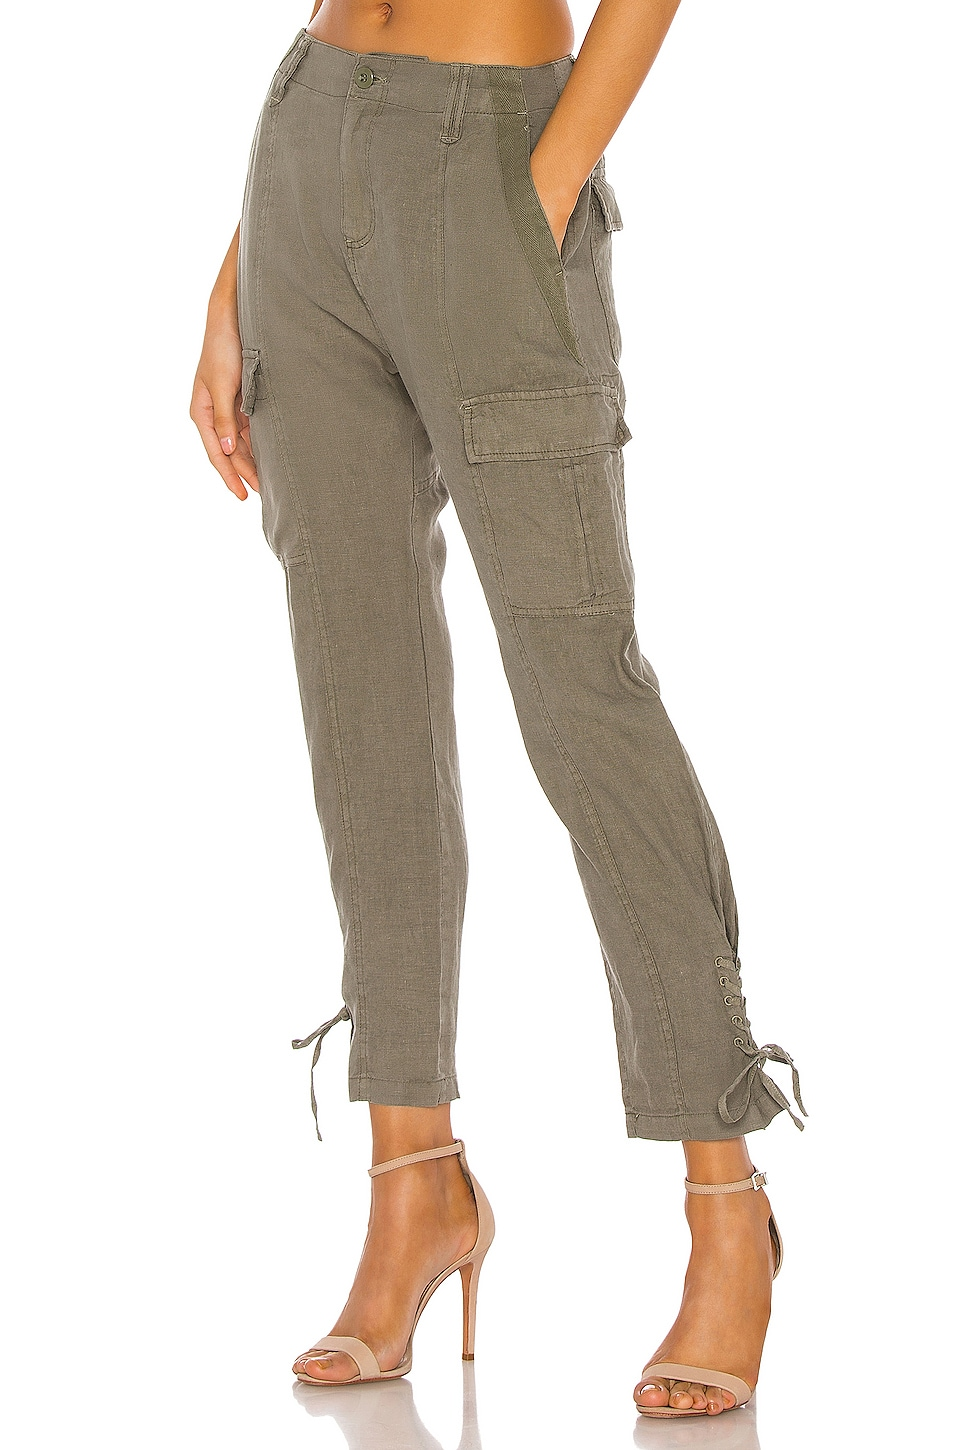 Joie Telutci Pant in Fatigue